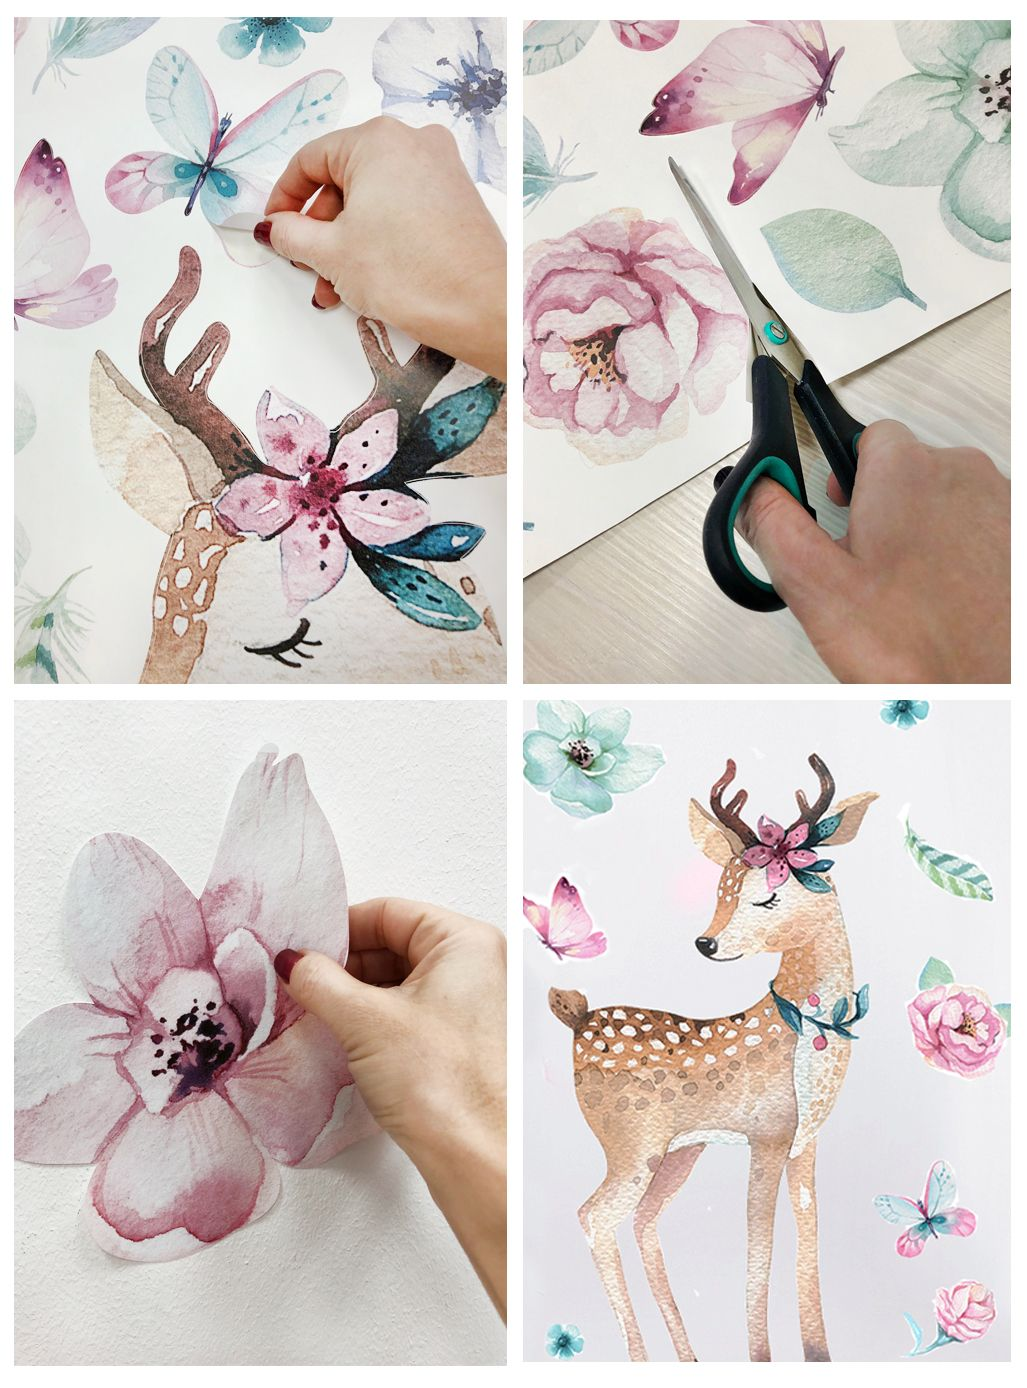 10x10 Girls Bedroom: Wall Decal For Girls Deer With Flowers, Nursery Wall Decal